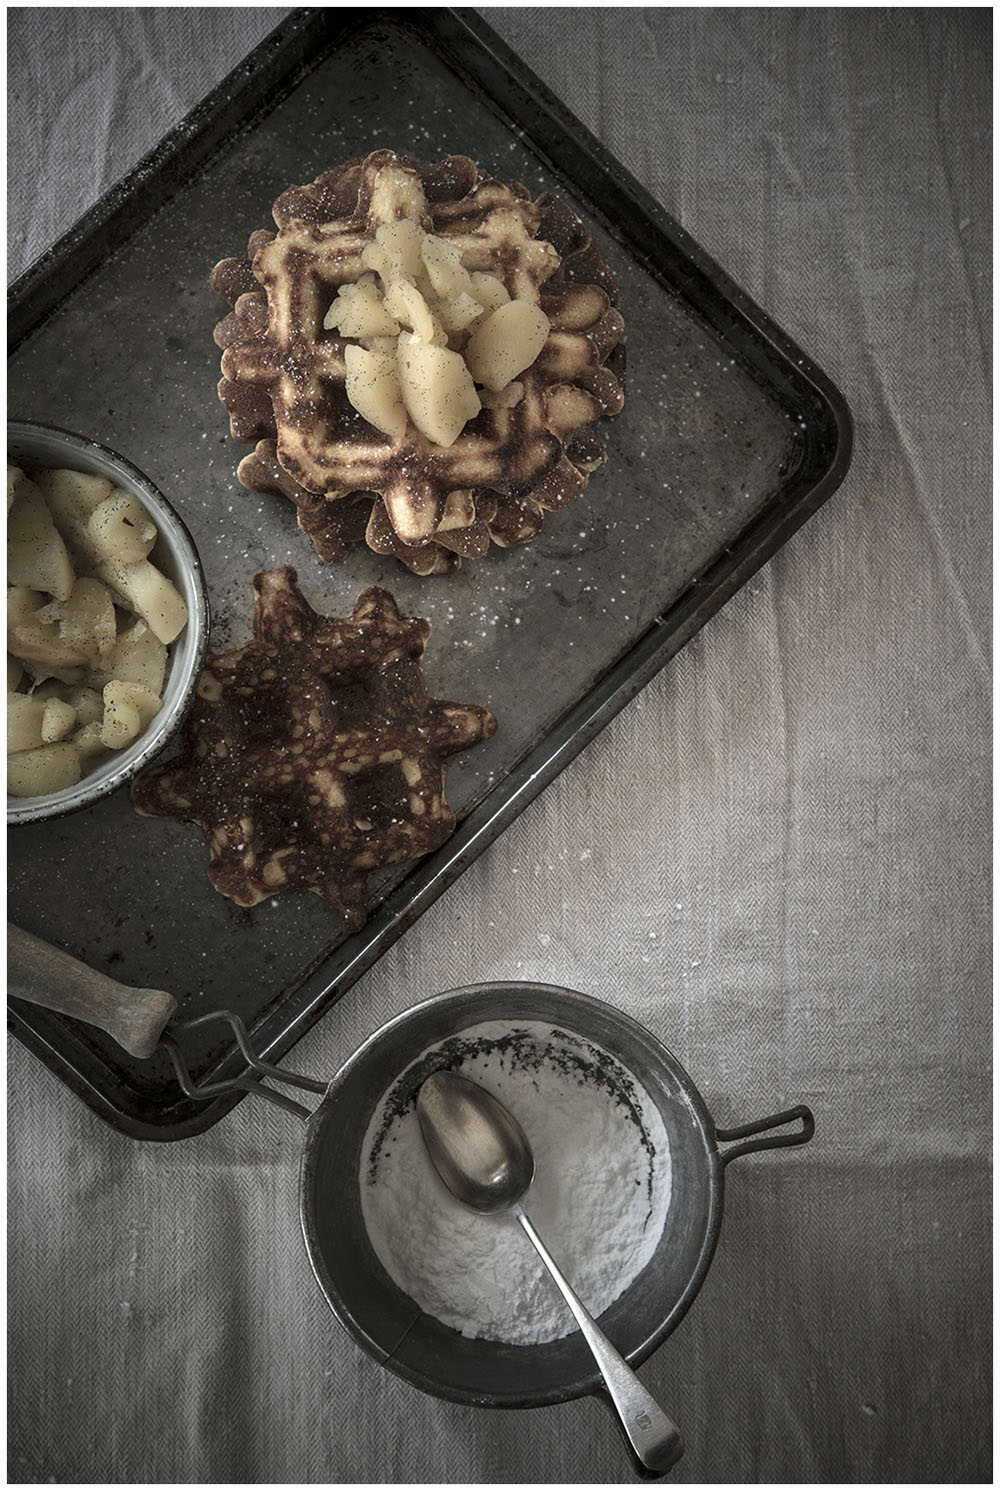 Almond & saffron waffles with stewed apples